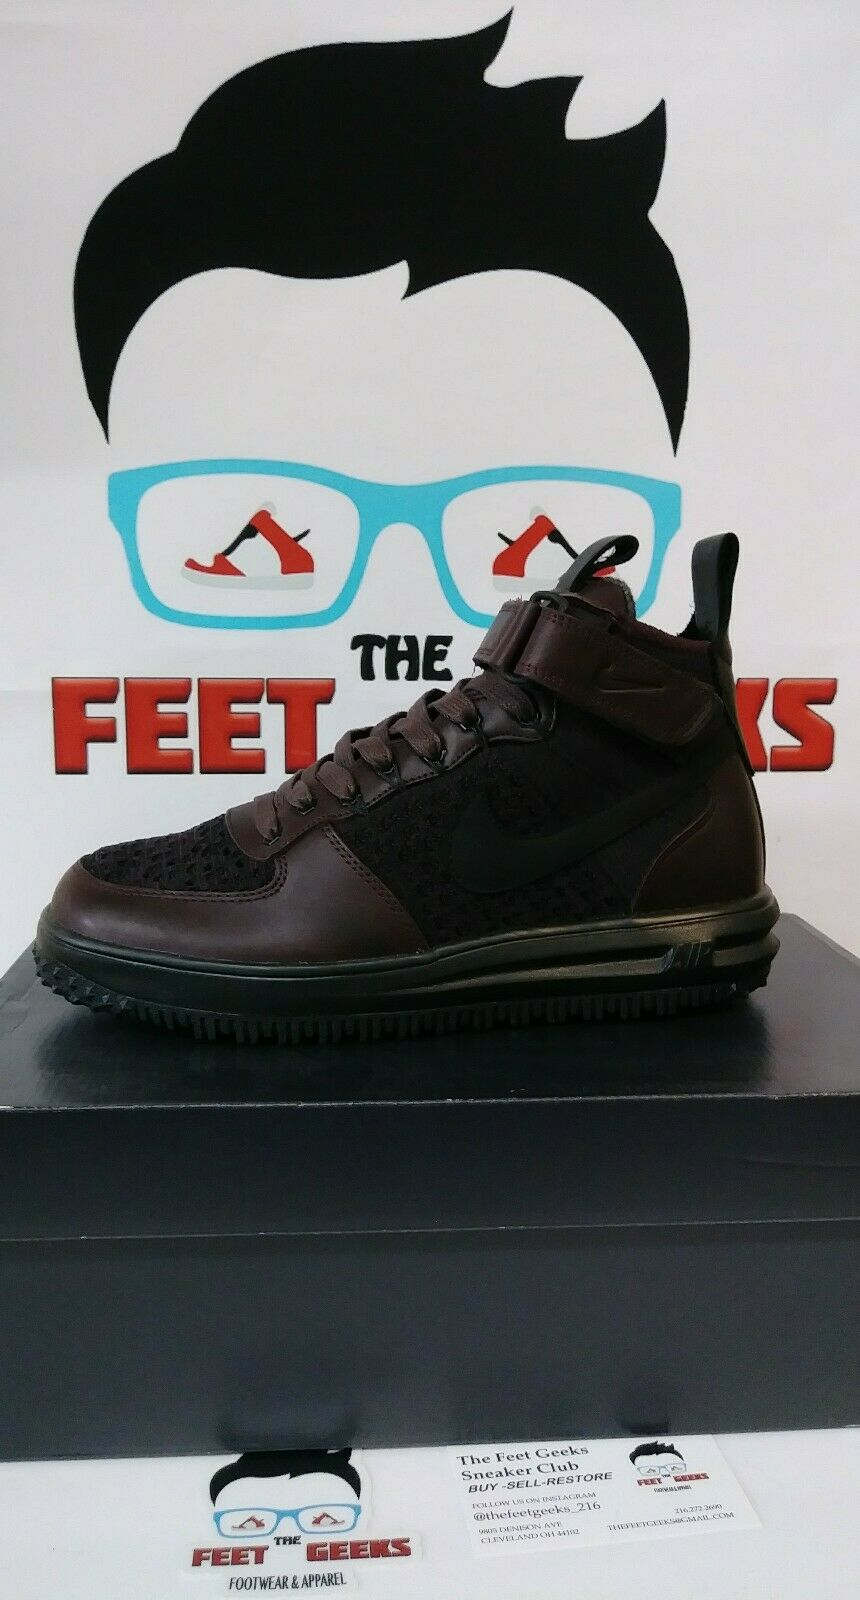 acde83c0cfffe9 NIKE LUNAR FORCE 1 BOOT BOOT BOOT BROWN LEATHER MENS SIZE 8 NEW WITH BOX 80